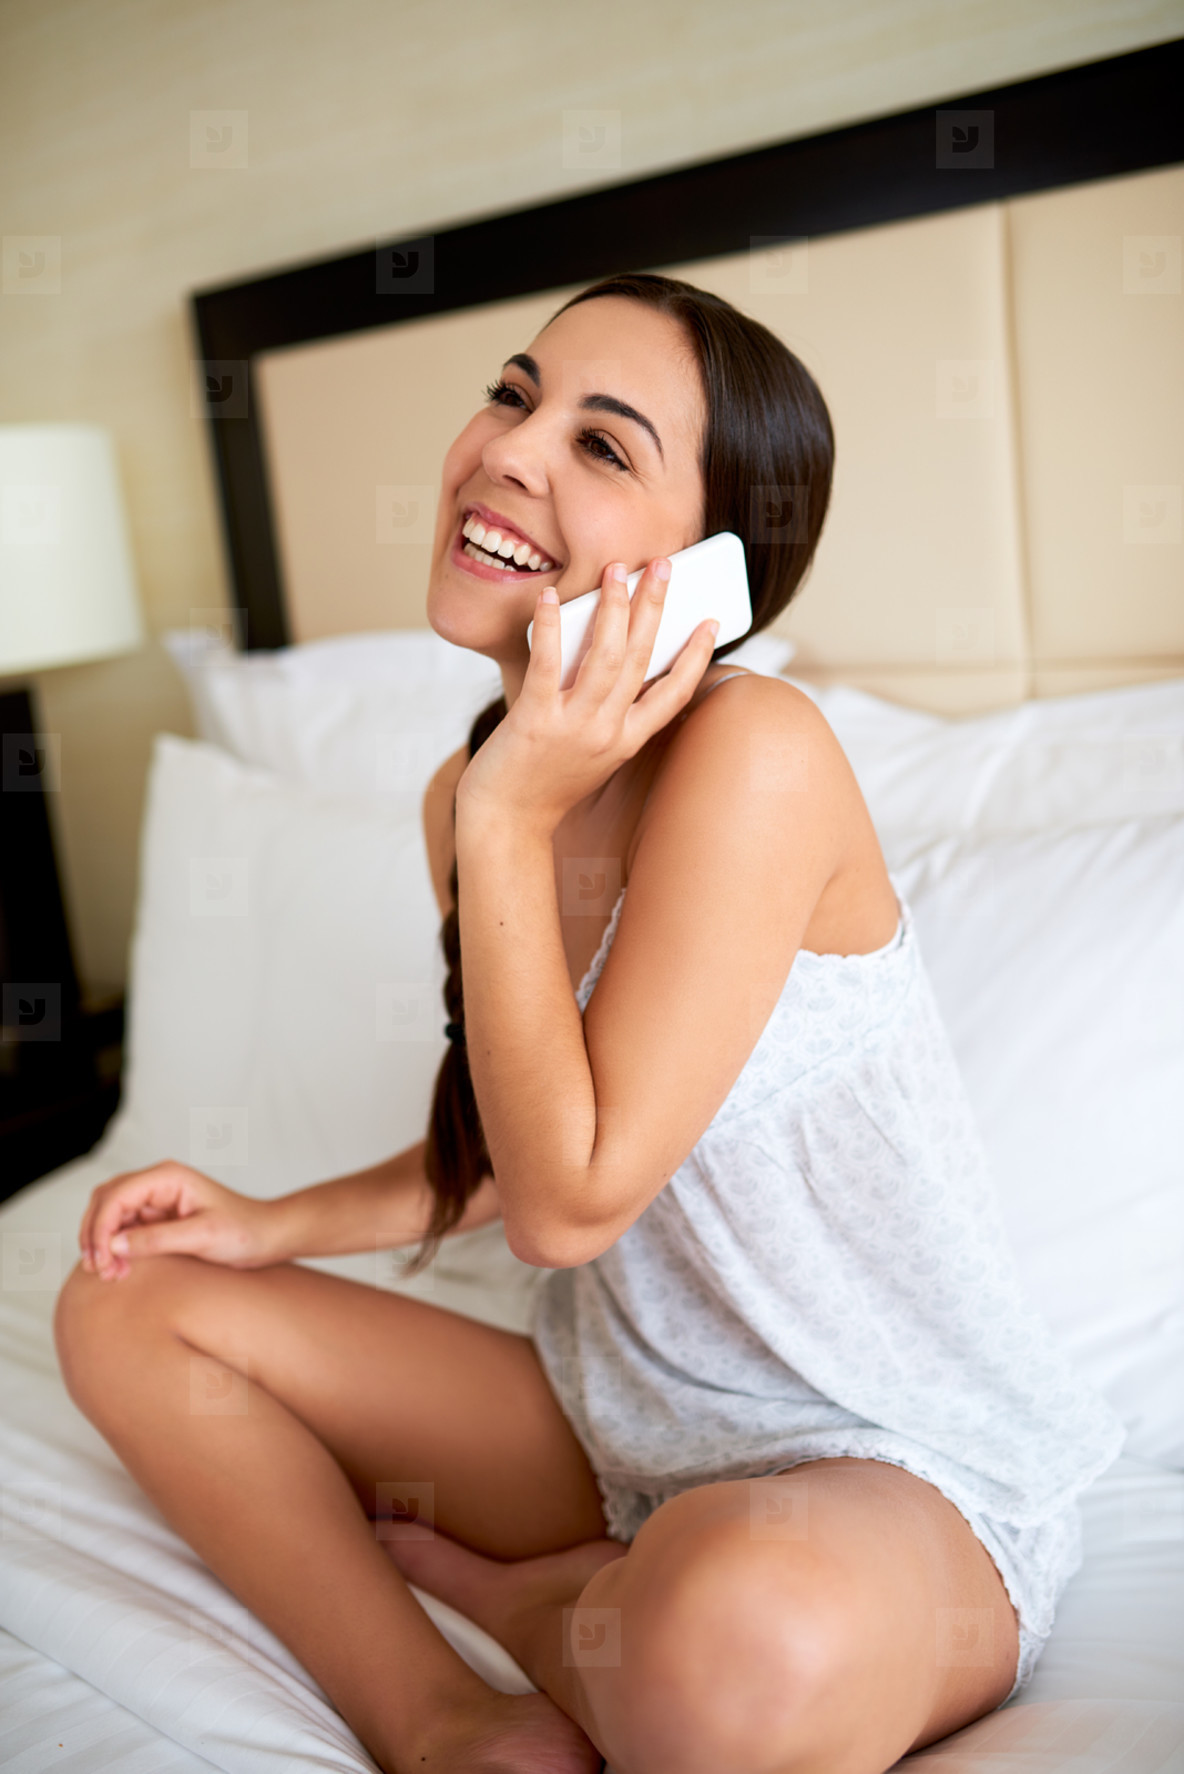 Young woman on cell phone in bed